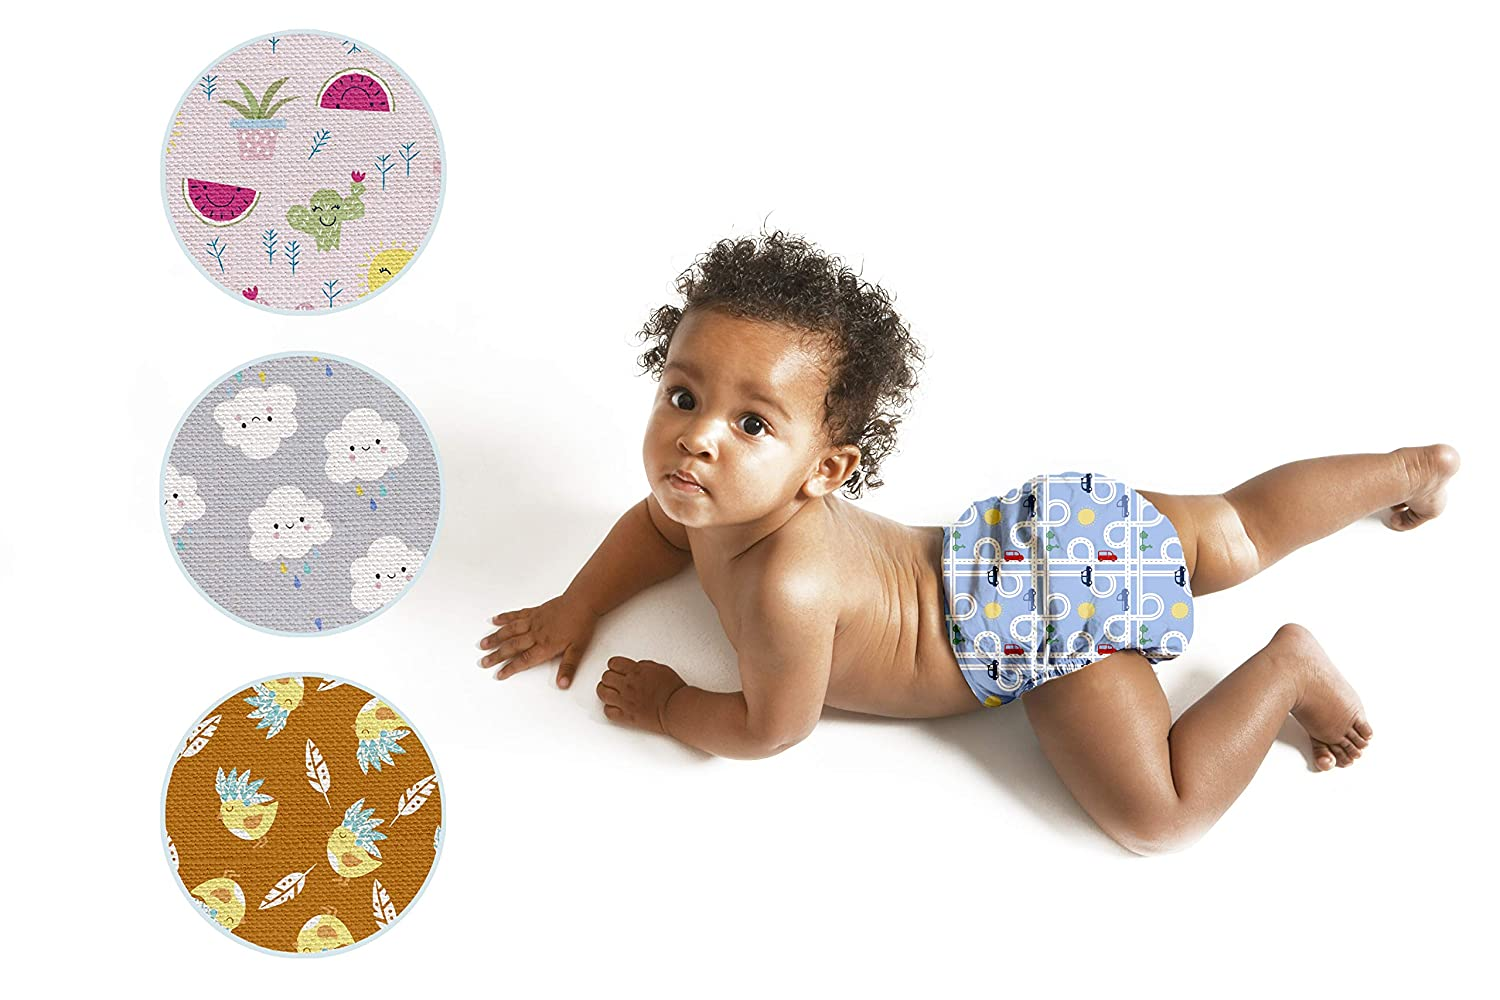 Hypoallergenic GOTS Organic Certified Reusable Nappy All-in-One + Booster | Certifications: Oeko 100, GOTS, Flammability 16 CFR, ISO/TR 1182 | Double Leg Gusset | Cloth Nappies | Washable | EU Brand